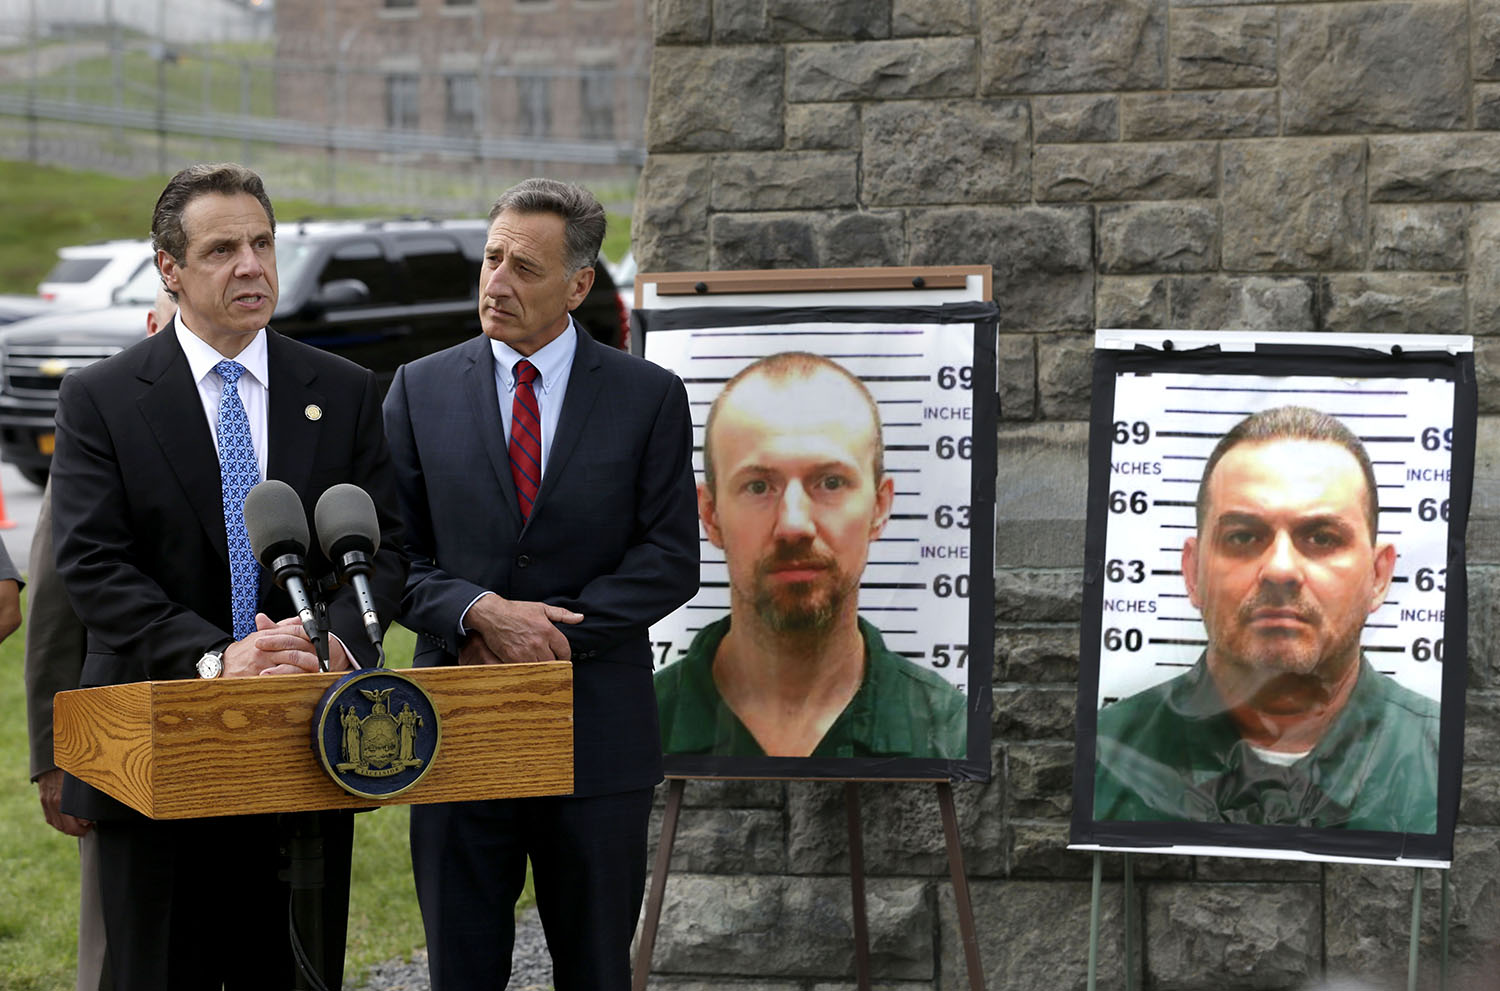 Vermont May Be A Destination For Dannemora Escapees